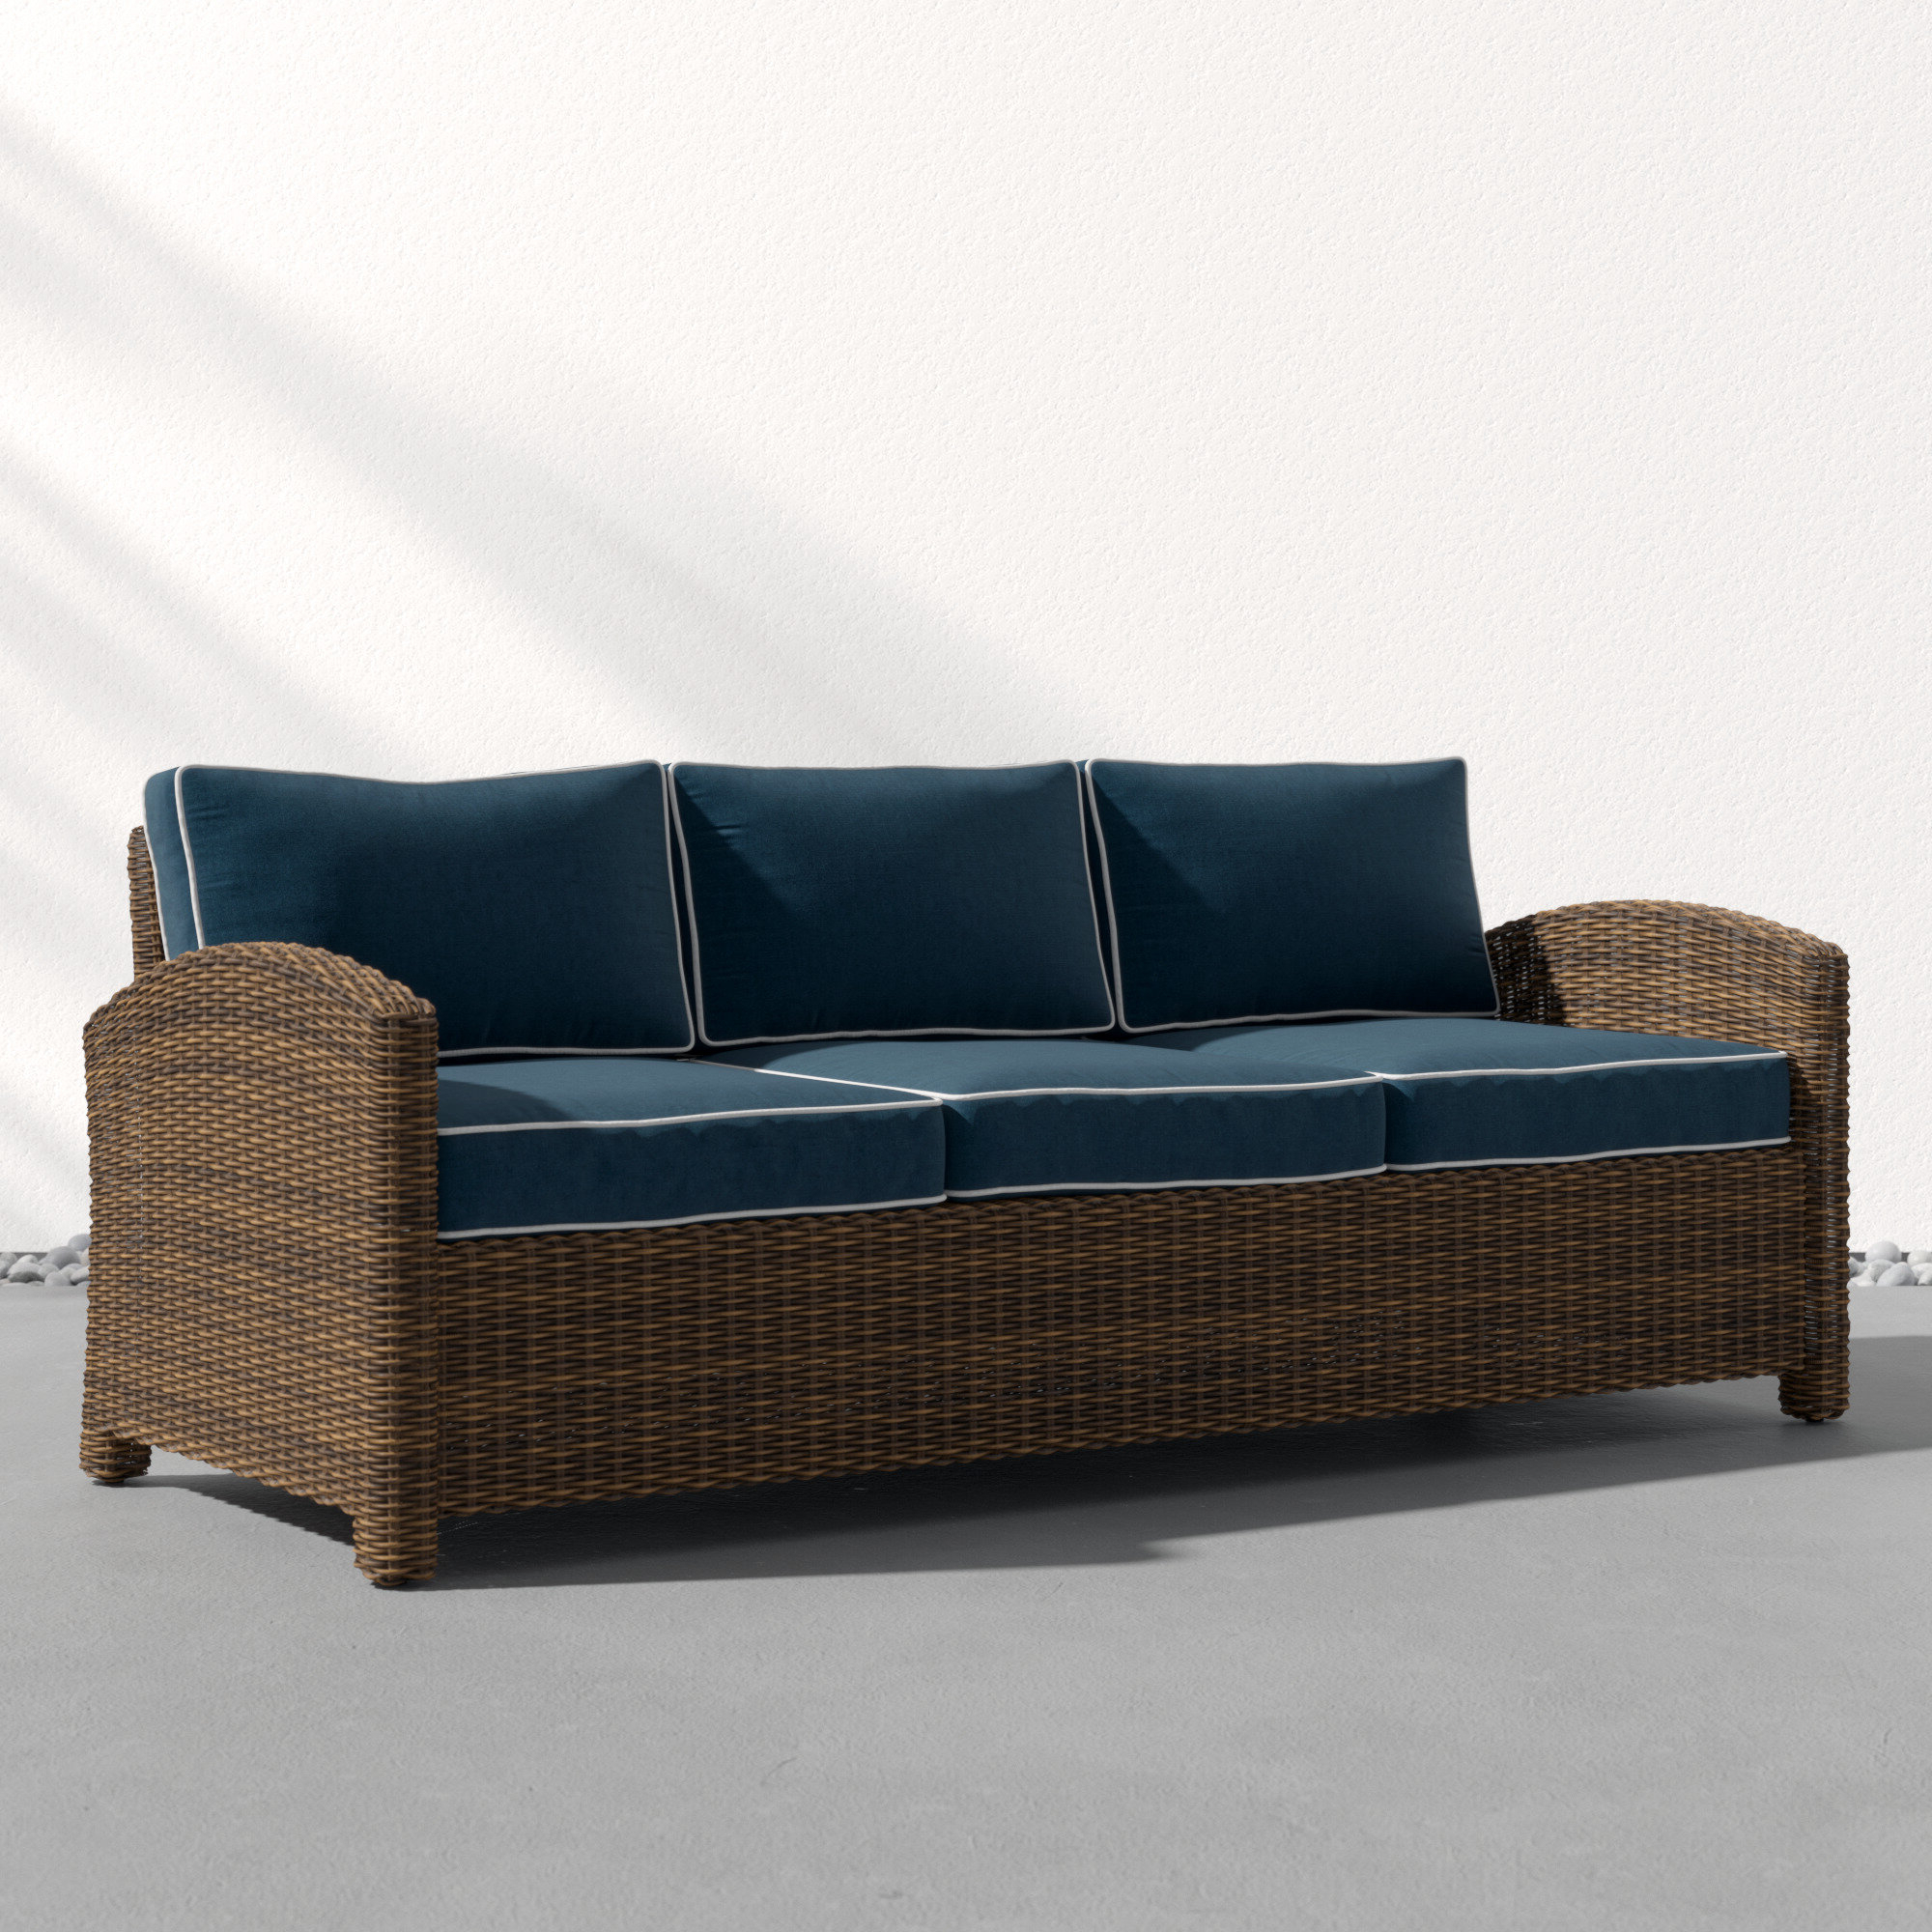 Allmodern Within Current Jamilla Teak Patio Sofas With Cushion (Gallery 17 of 25)